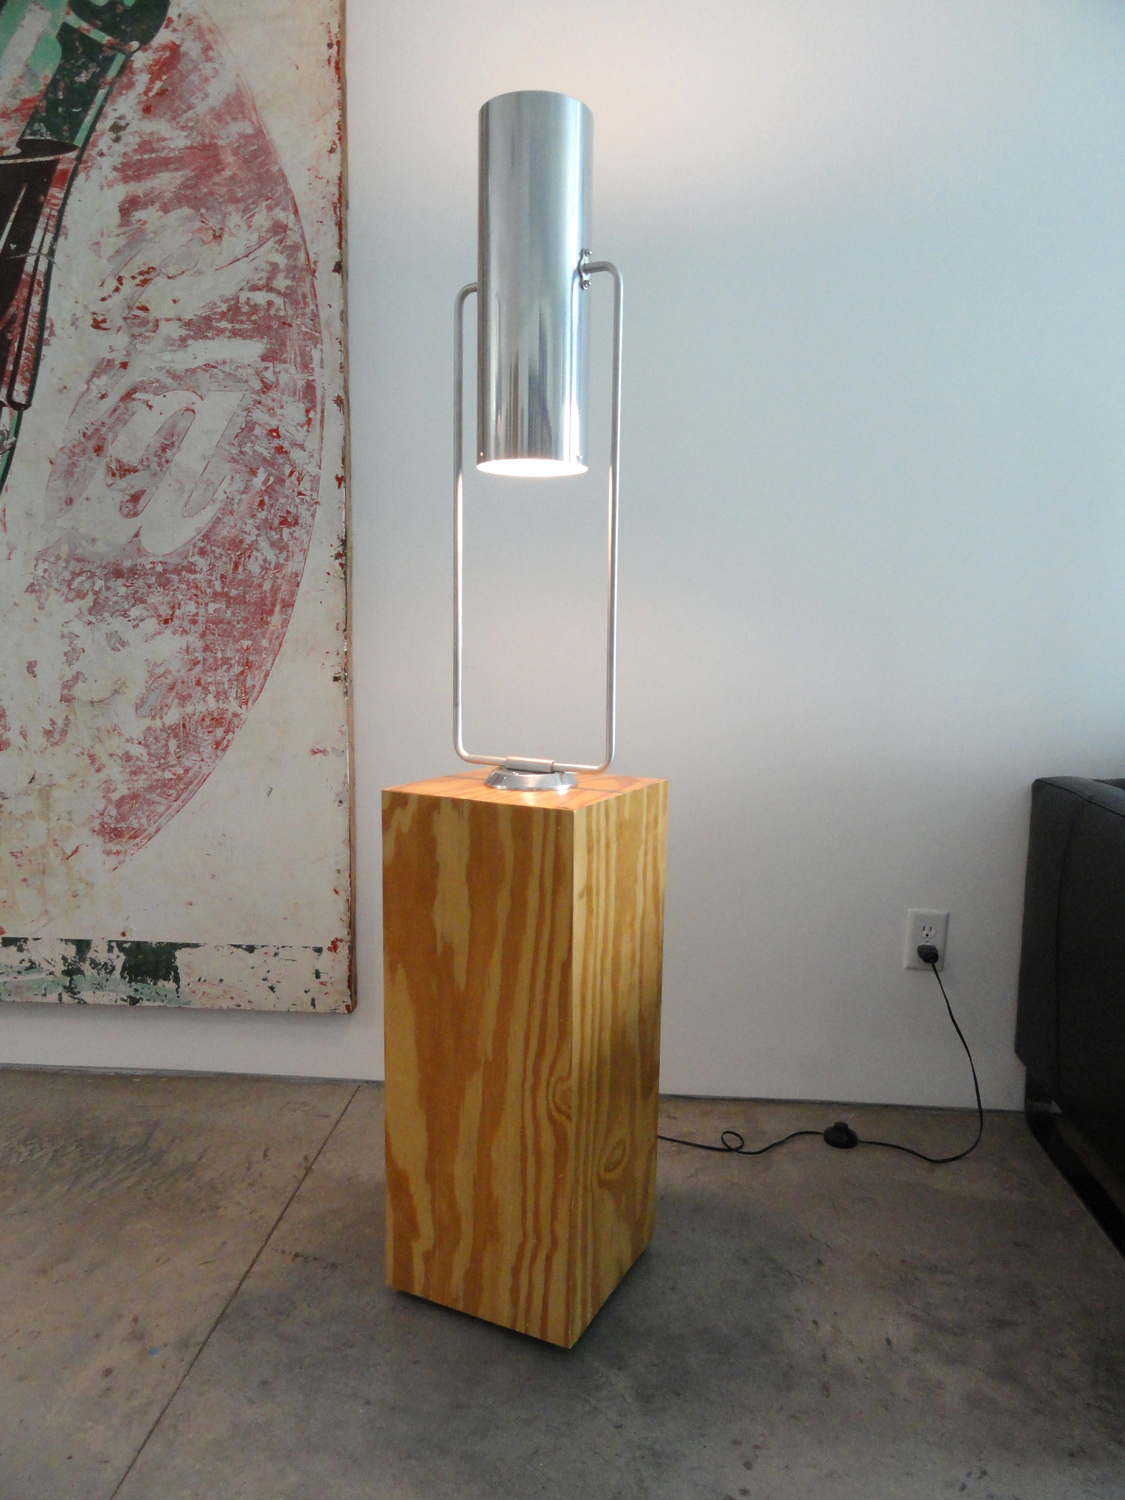 Floor lamp, made from a rectangular plywood base box and salvaged 1960's department store, ceiling-mounted light fixtures.